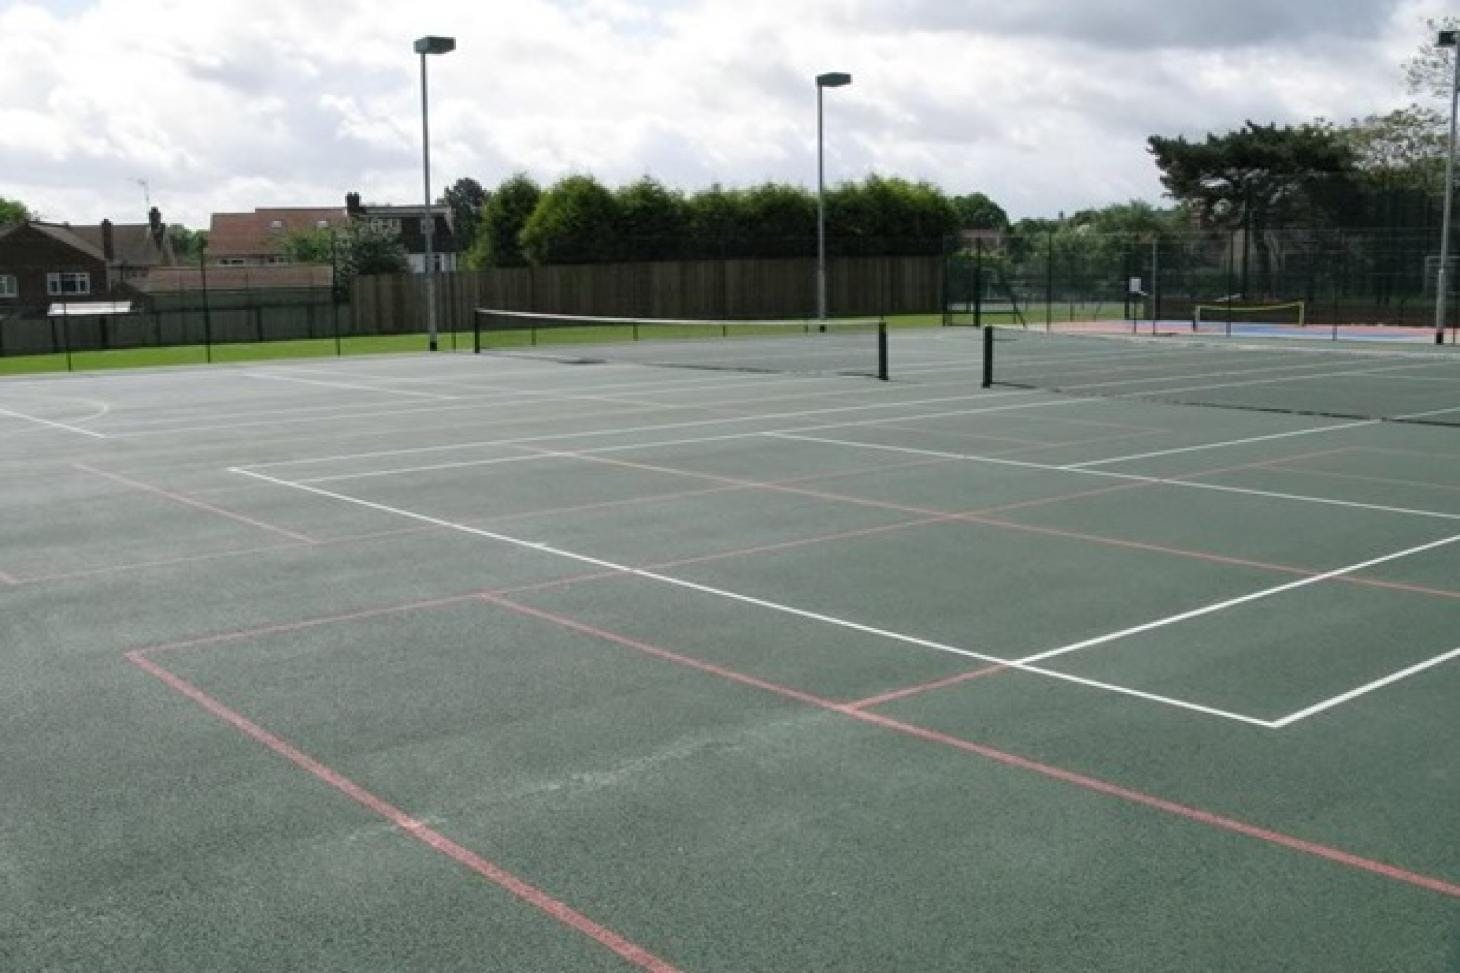 Denbigh High School Outdoor | Hard (macadam) tennis court